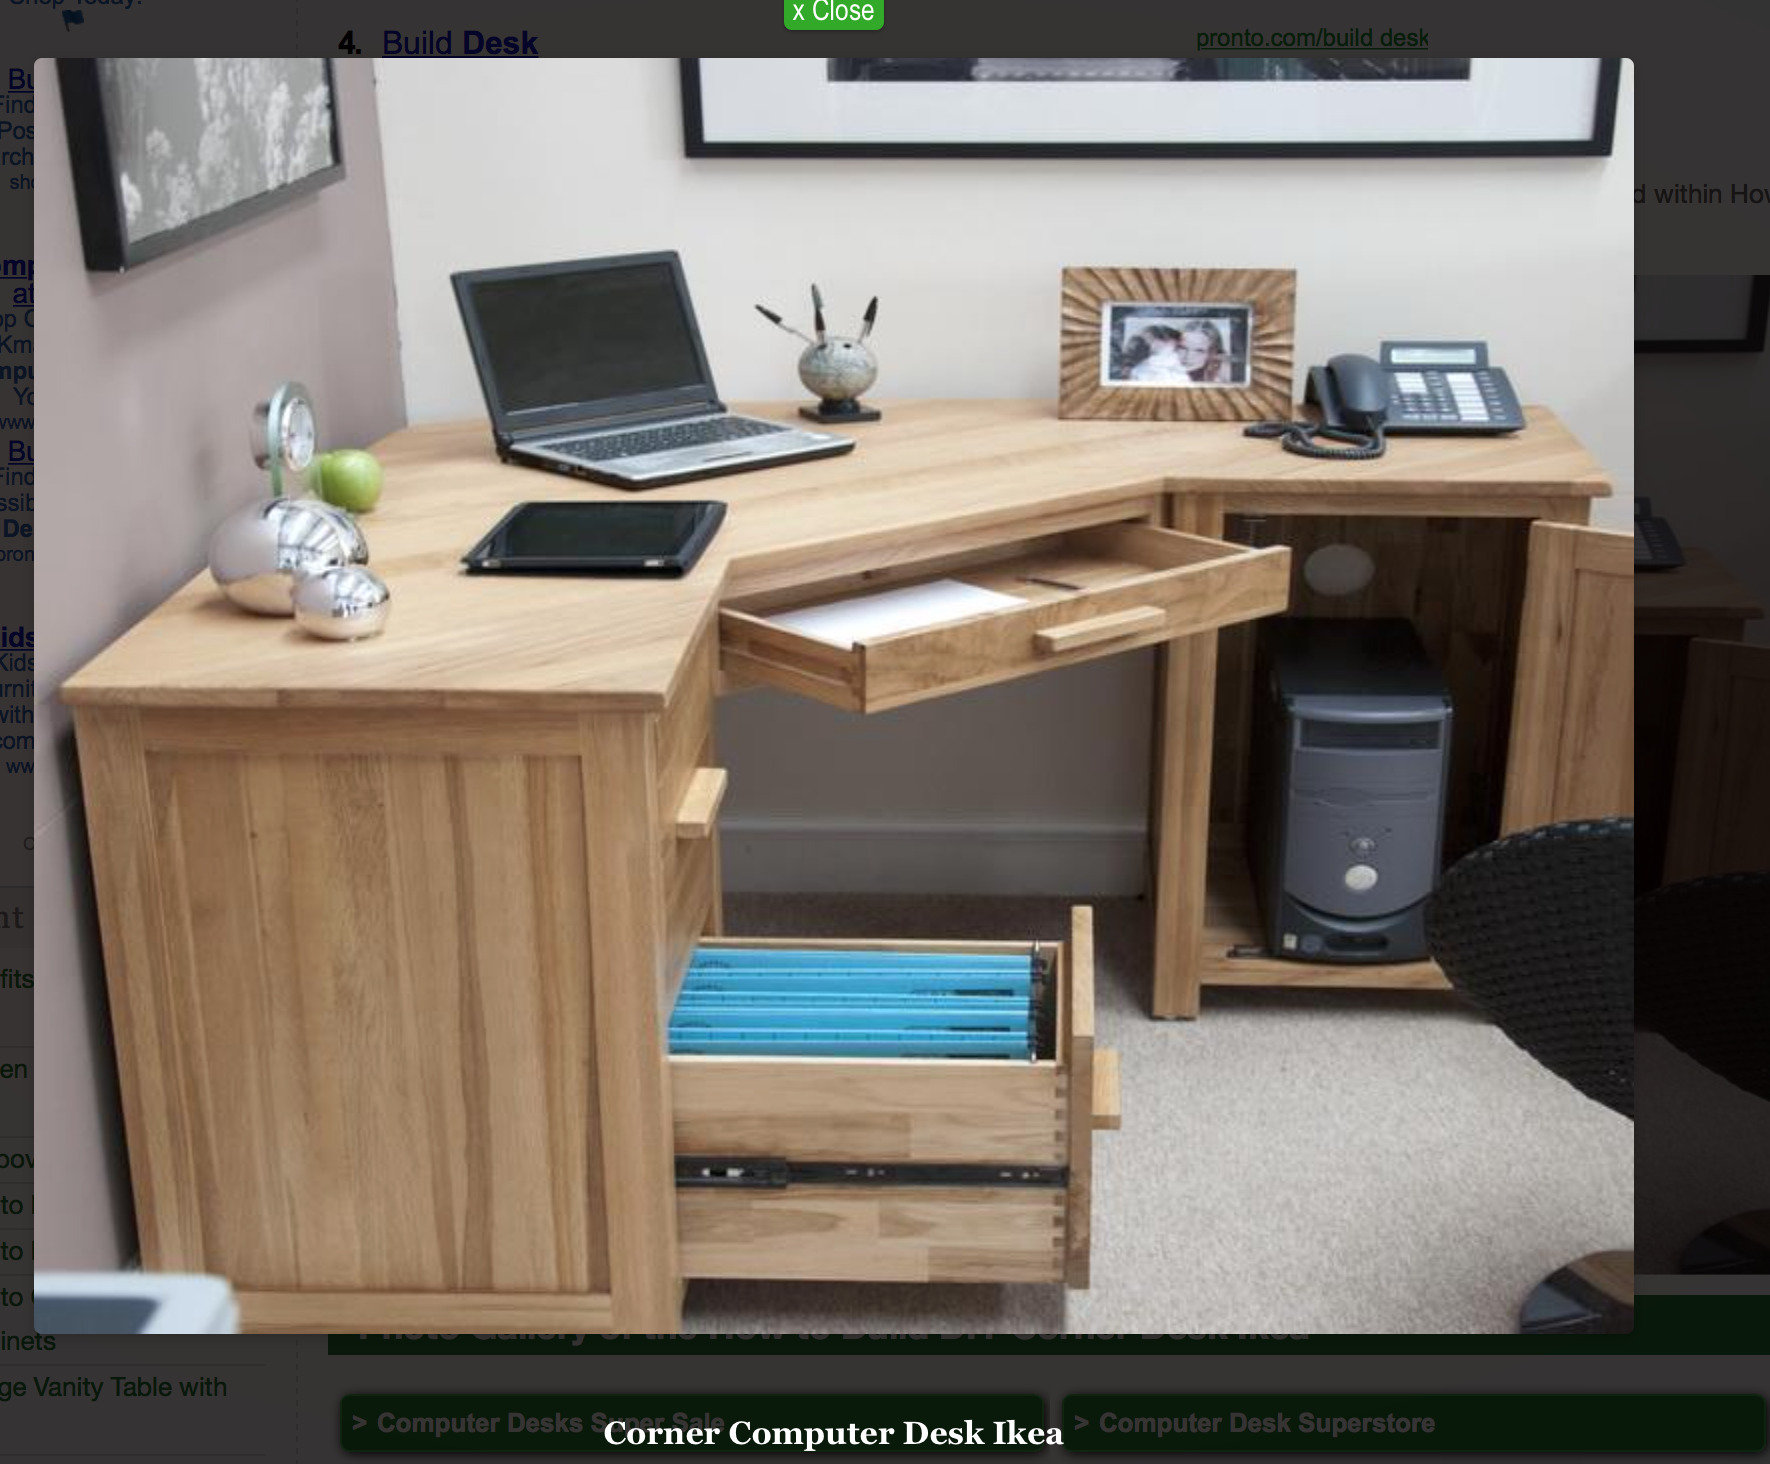 too ideas made desk mentioned here best blinds building the dma homes home homemade would